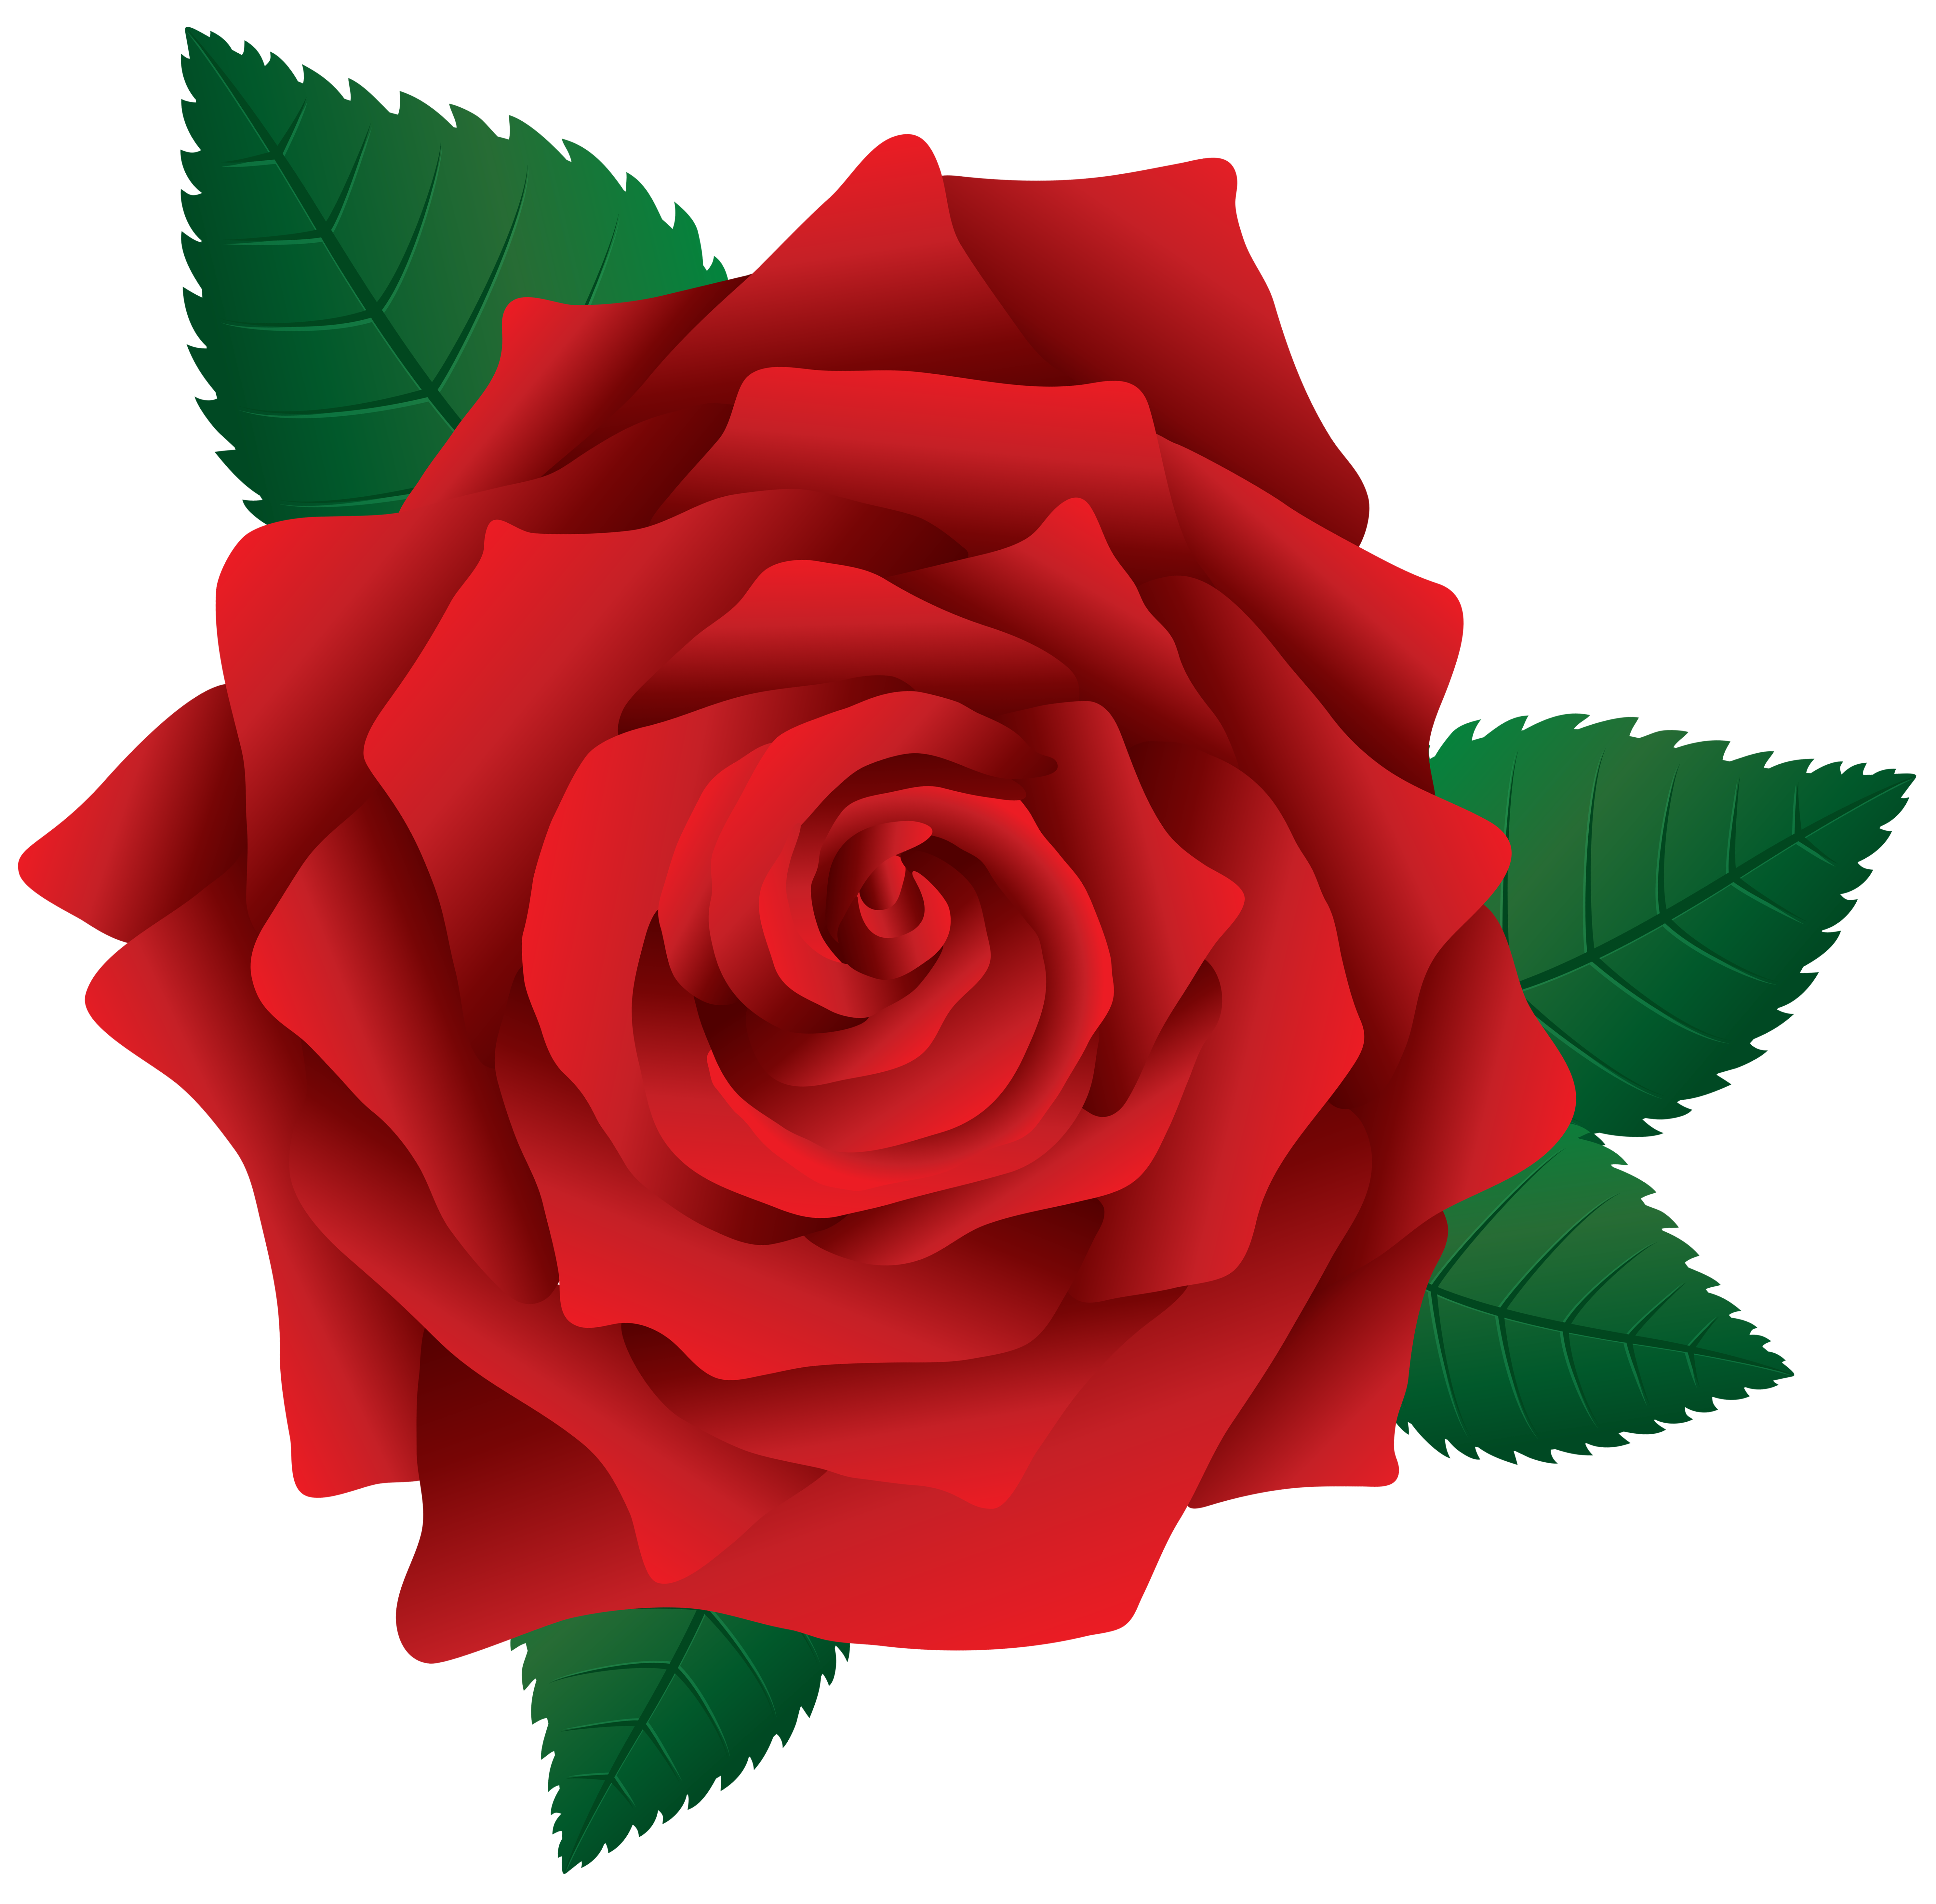 Red Rose Png Image Clipart Red Rose Png Flower Phone Wallpaper Red Roses